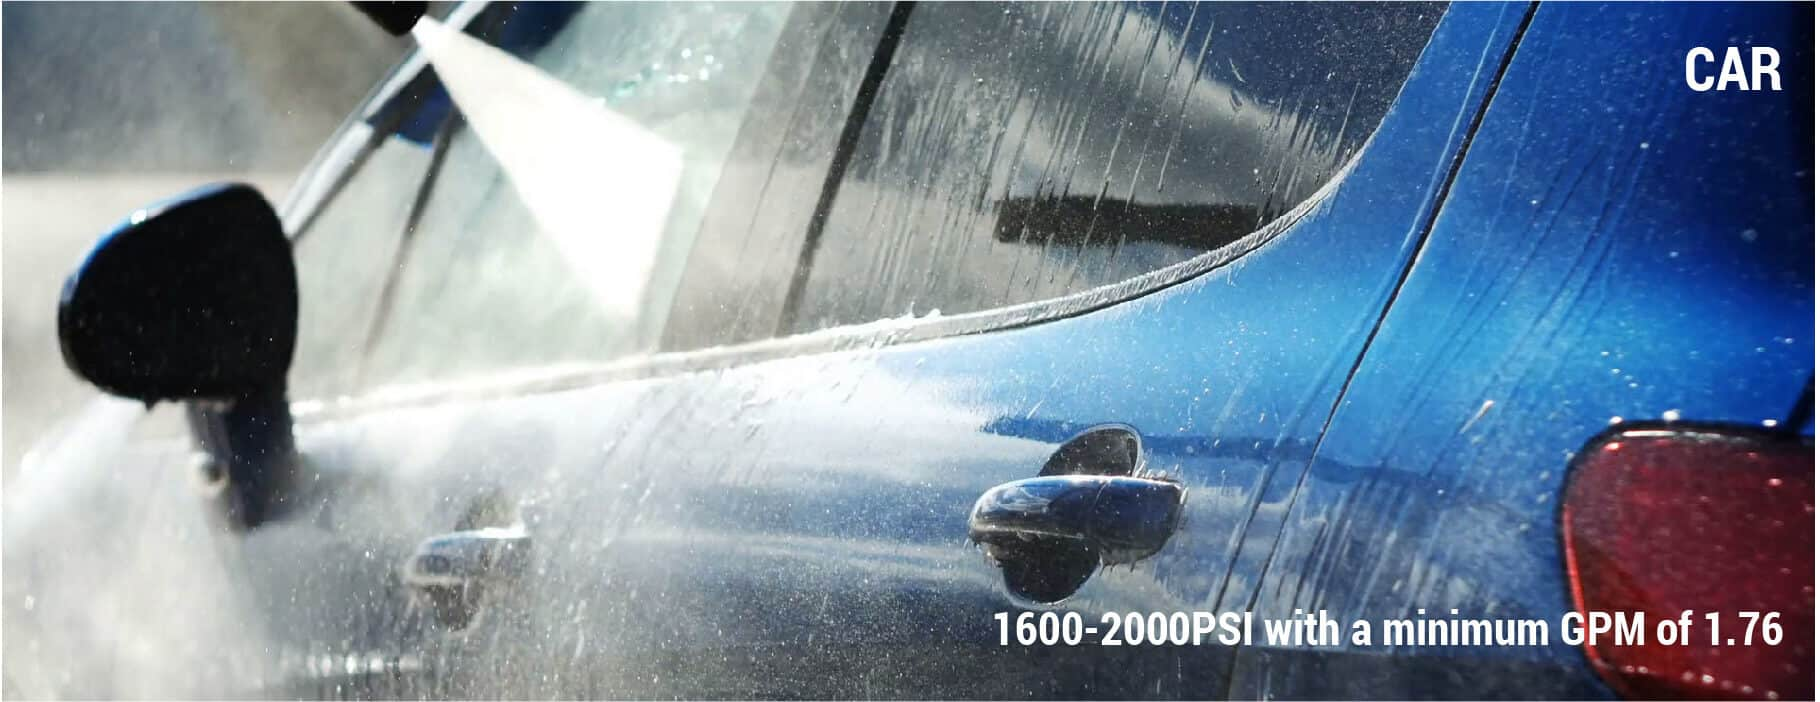 What PSI To Wash a Car?